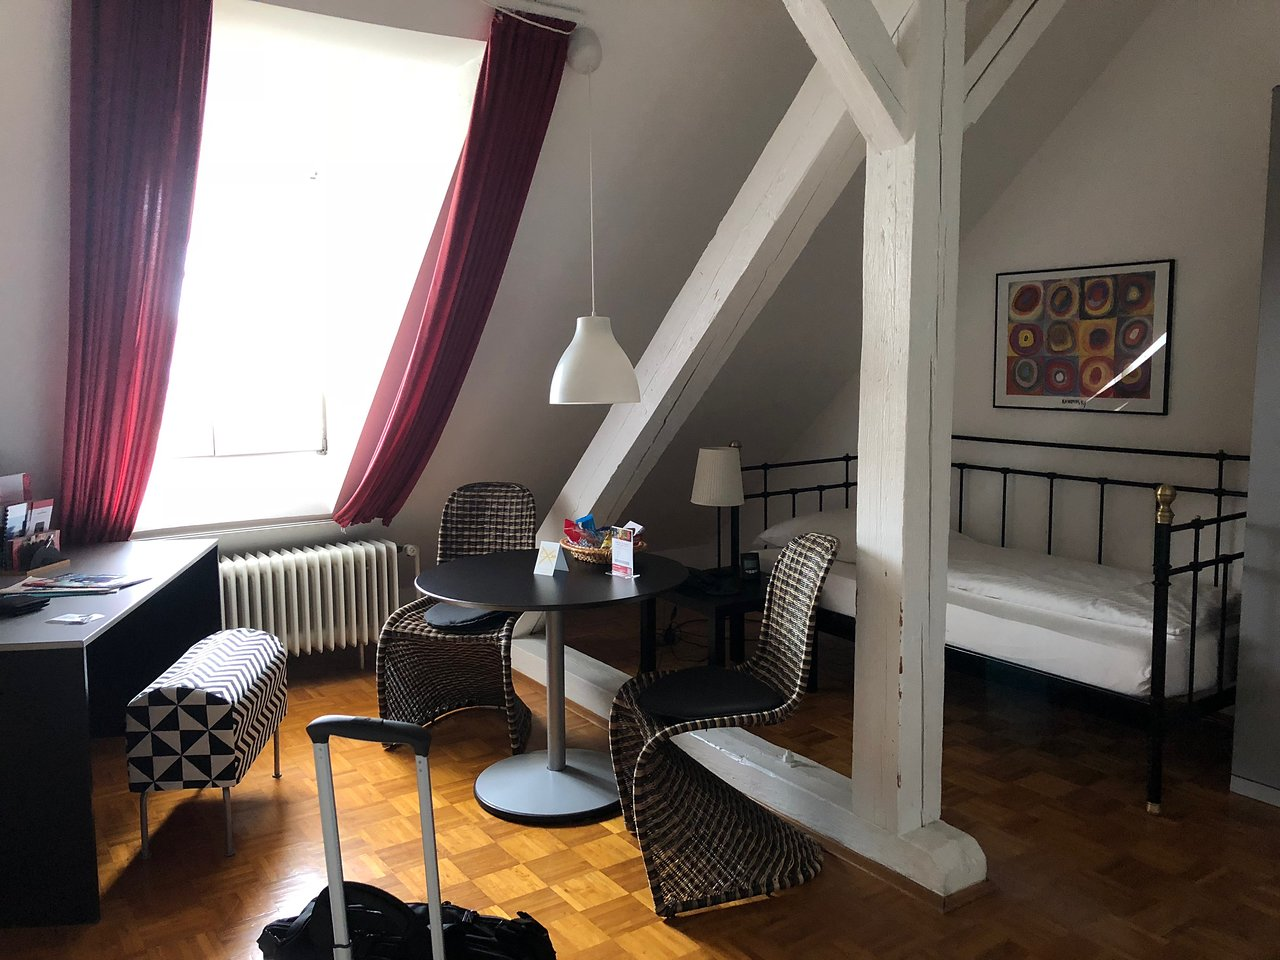 ABC HOTEL - Updated 2018 Prices & Reviews (Konstanz, Germany ...